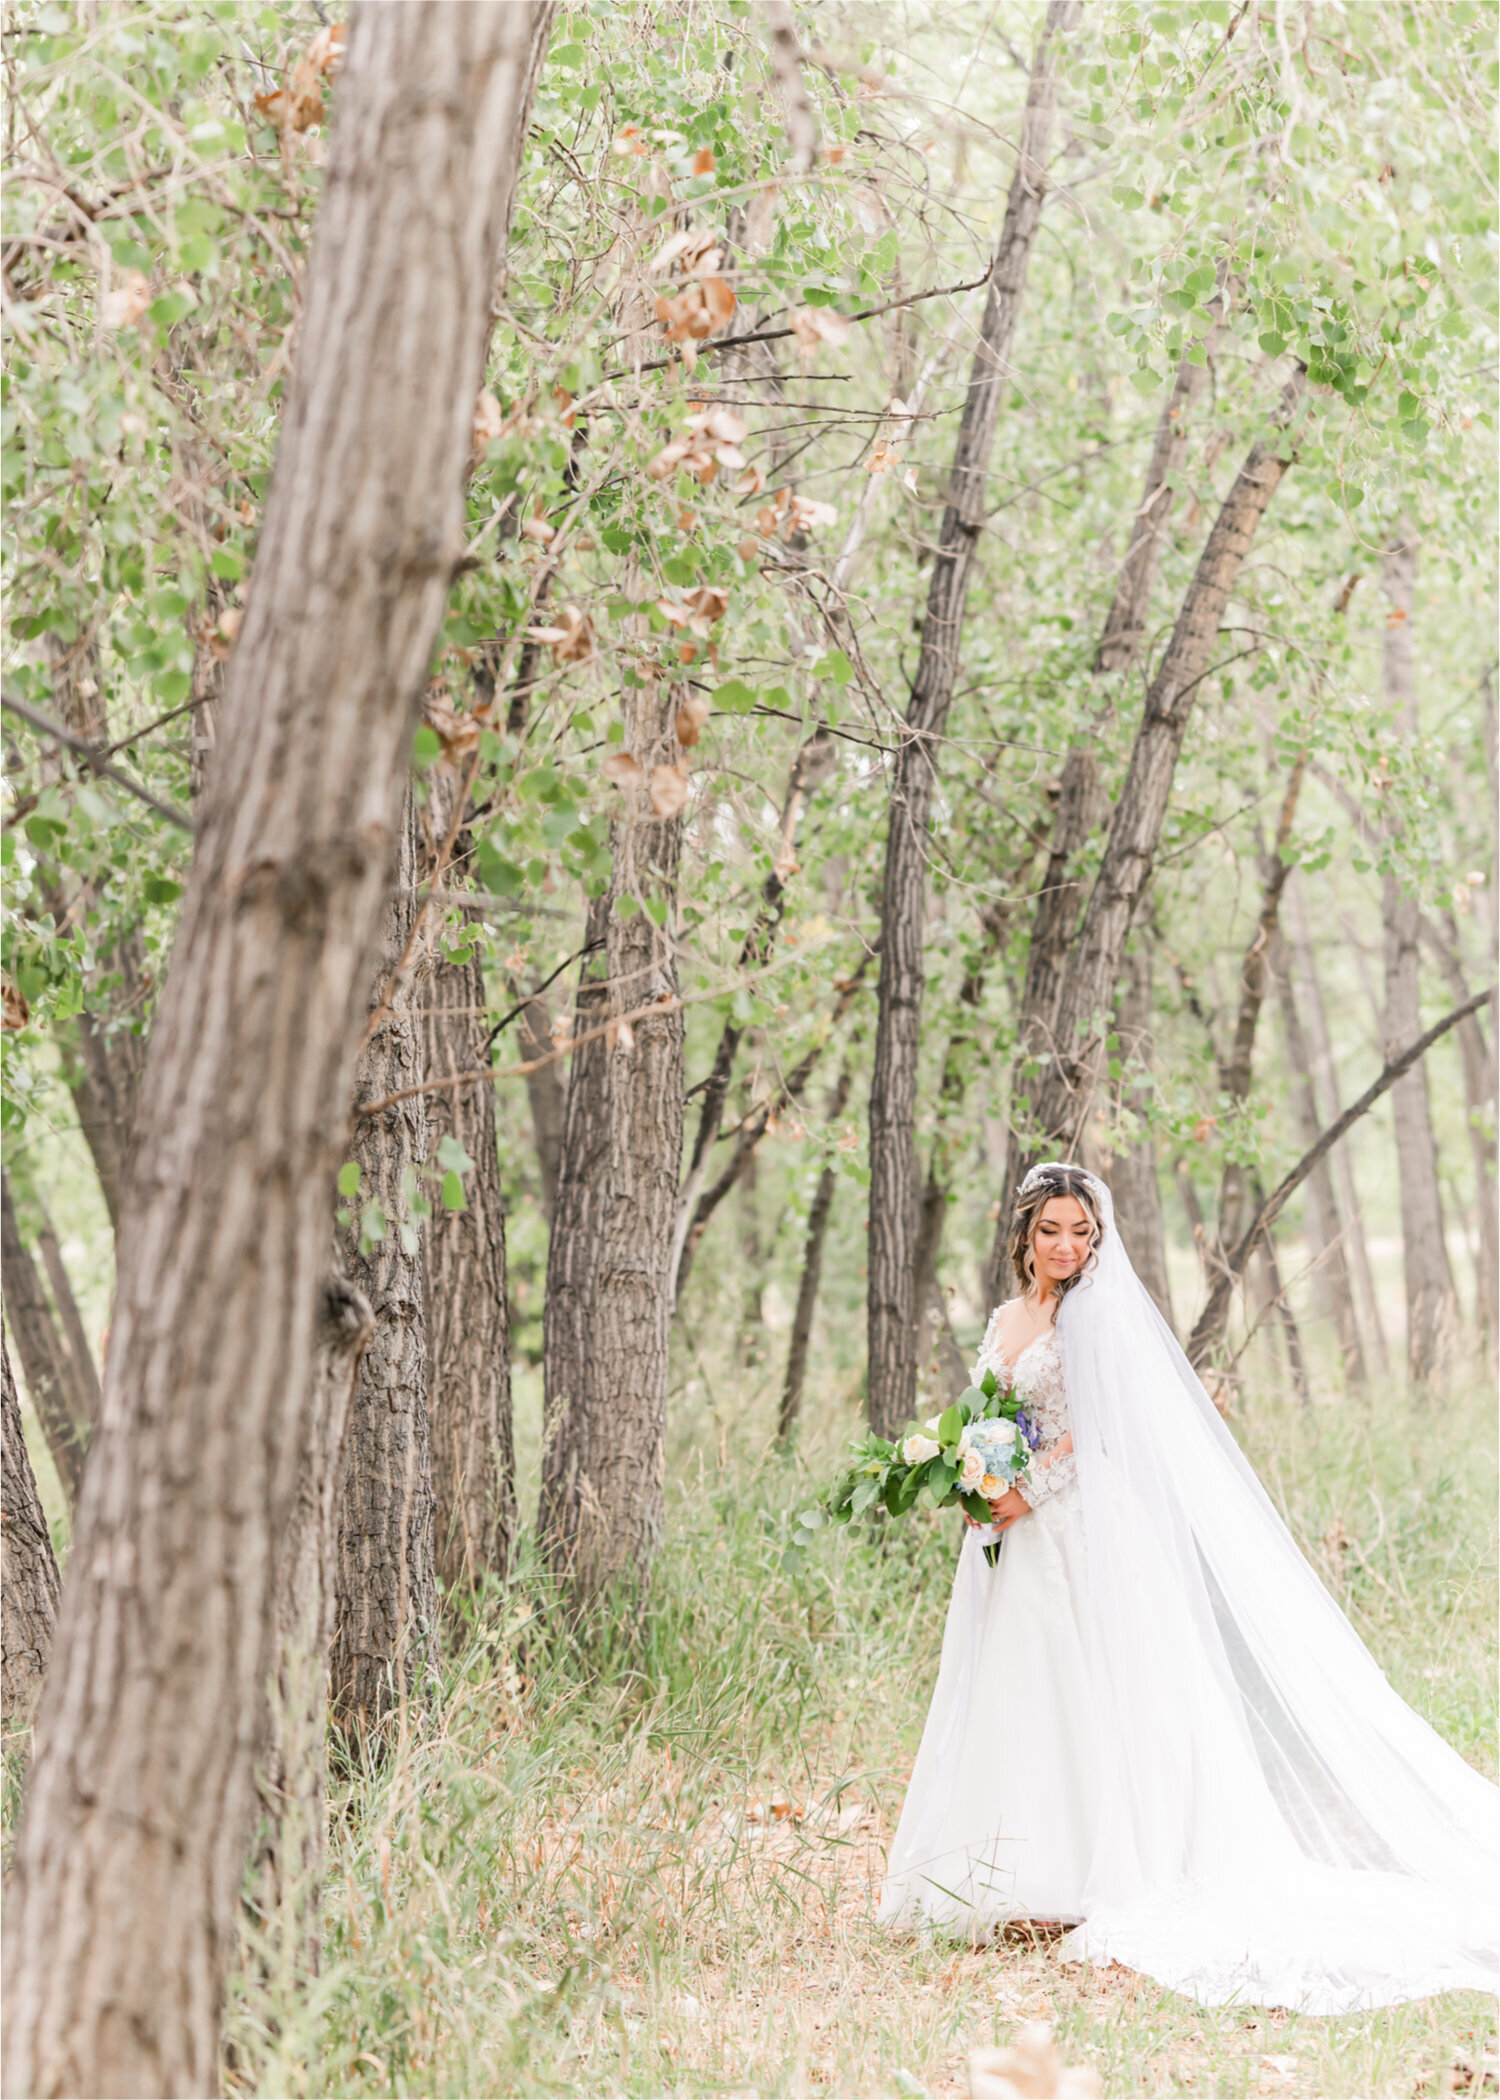 Noza + Dmitriy Wedding Blog 23